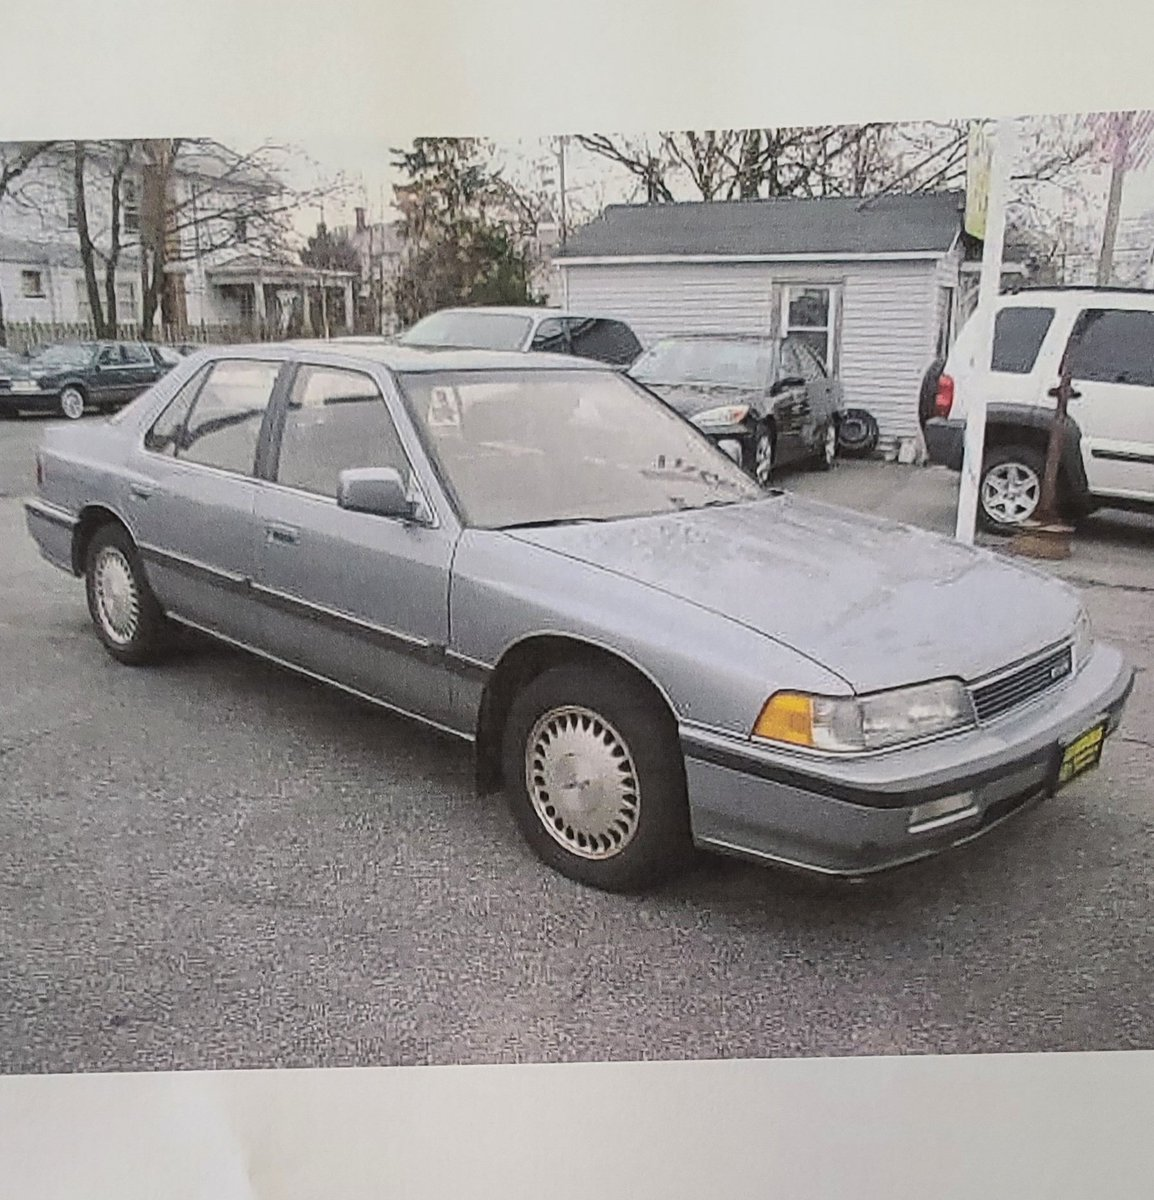 I know it's not #tbt but just came across this picture. My first car. #acura #legend #acuralegend #LS #fullyloaded #1990 https://t.co/Su9ARgRGil